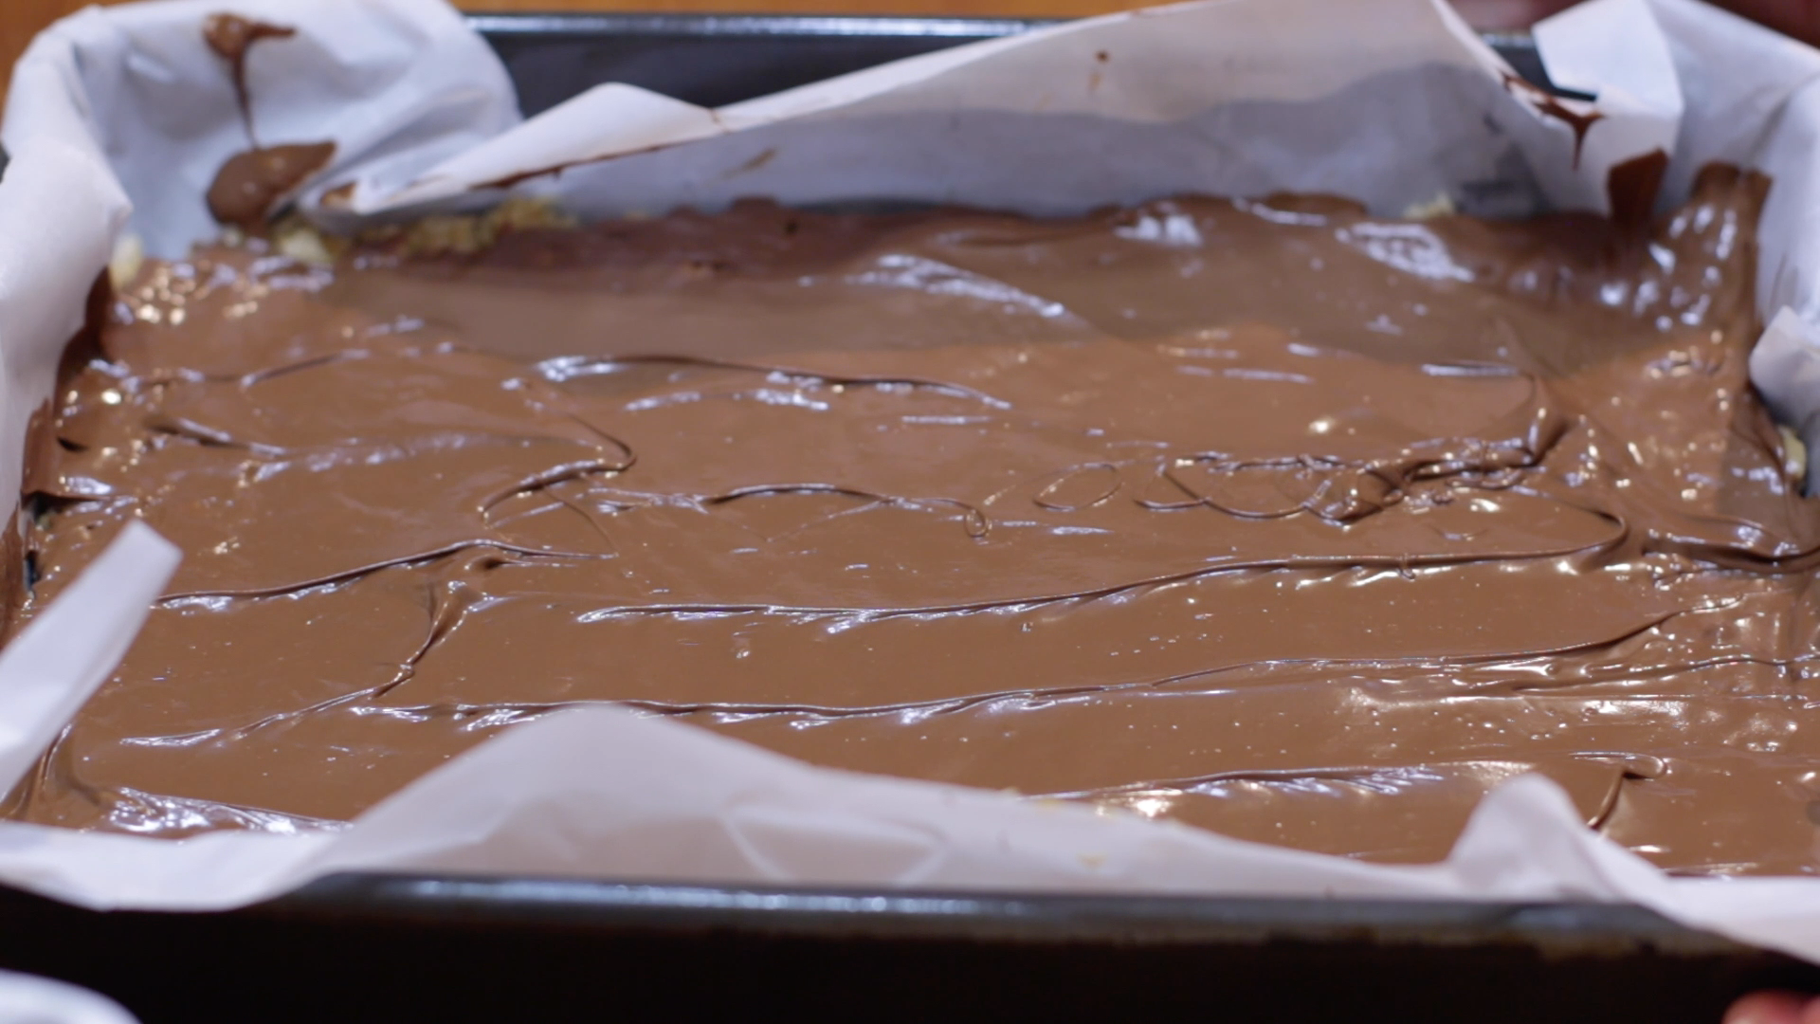 Chocolate and Butterscotch Time!